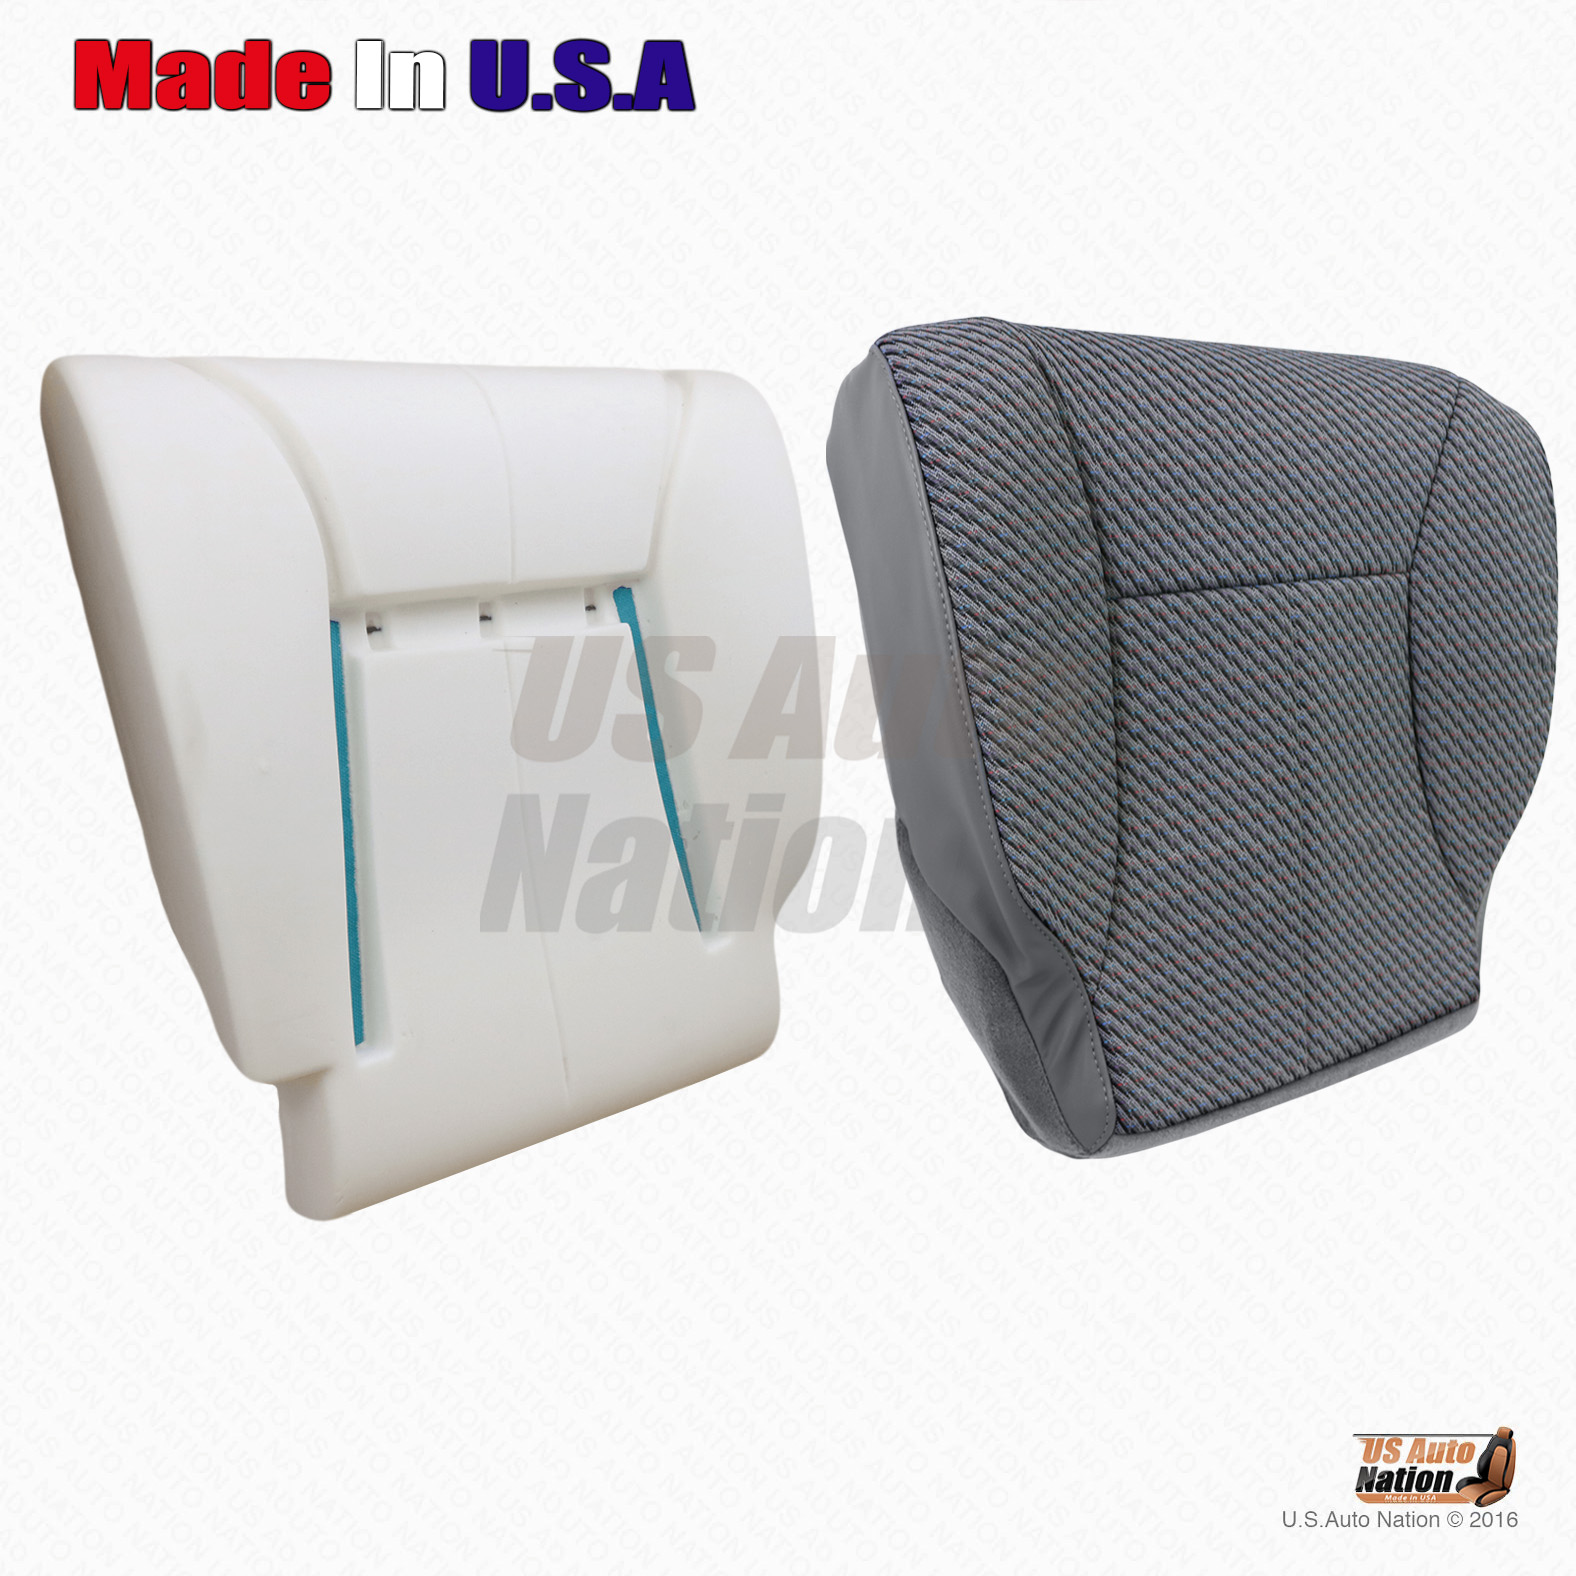 Details about  /2000-2002 Dodge Ram 2500 SLT Front Driver Side Bottom Cloth Seat Cover dark gray